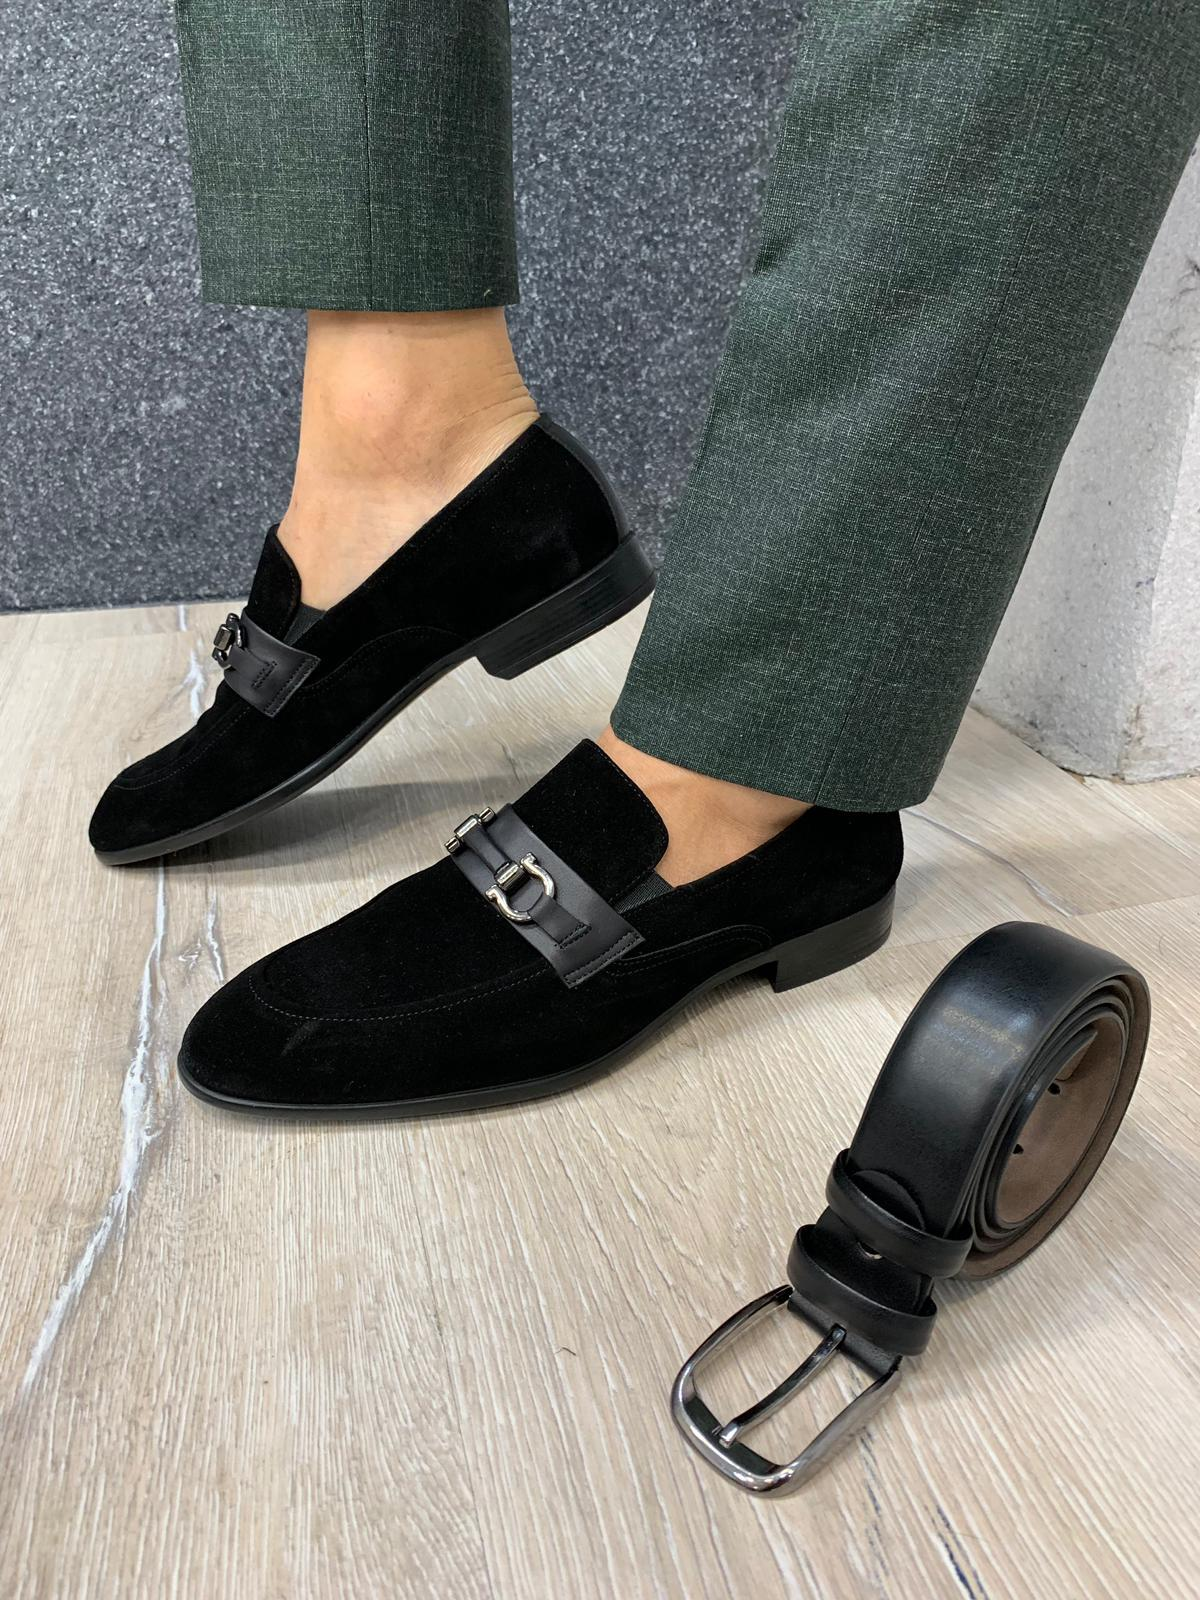 Buckled Suede Shoes Black